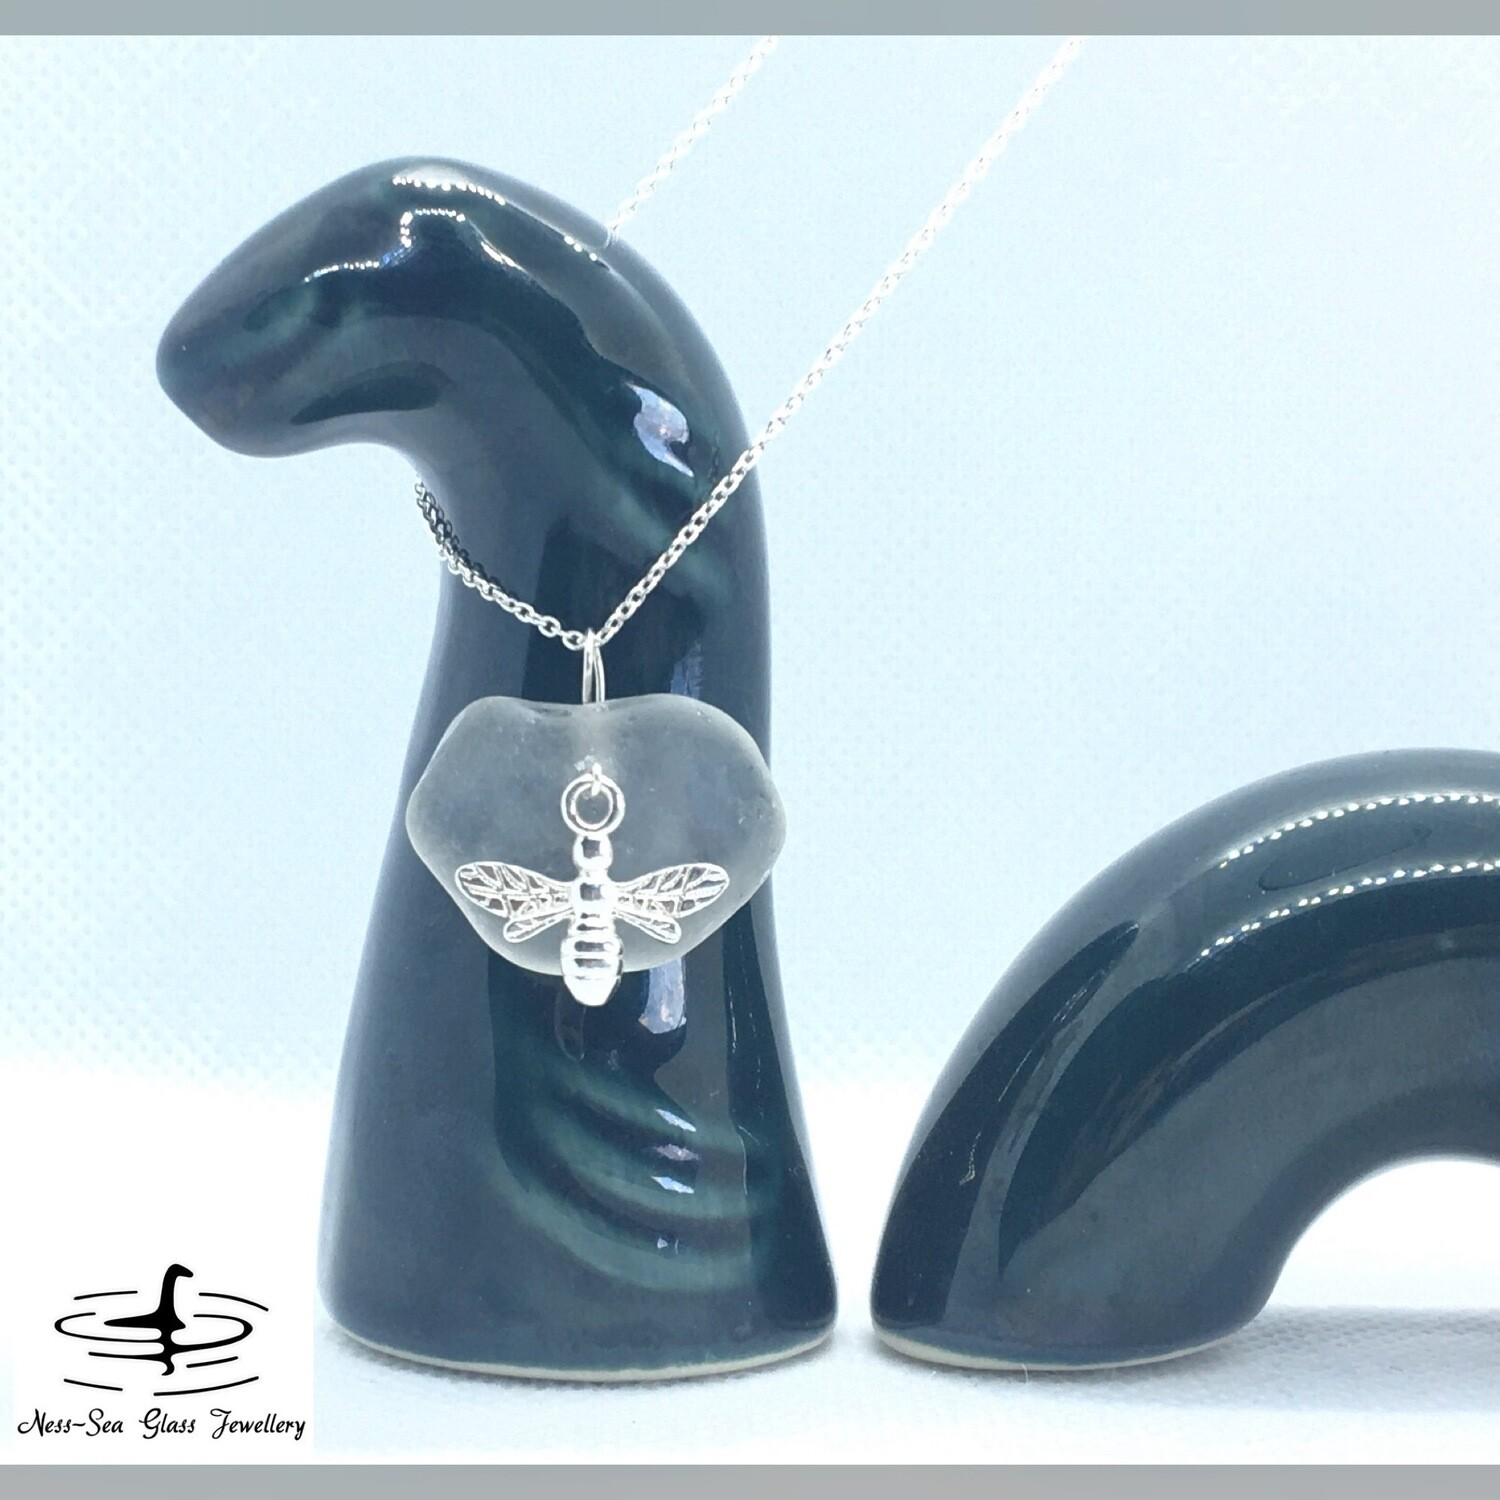 Clear Loch Ness Sea Glass Necklace with Sterling Silver Bee Detail and Fine Sterling Silver Chain